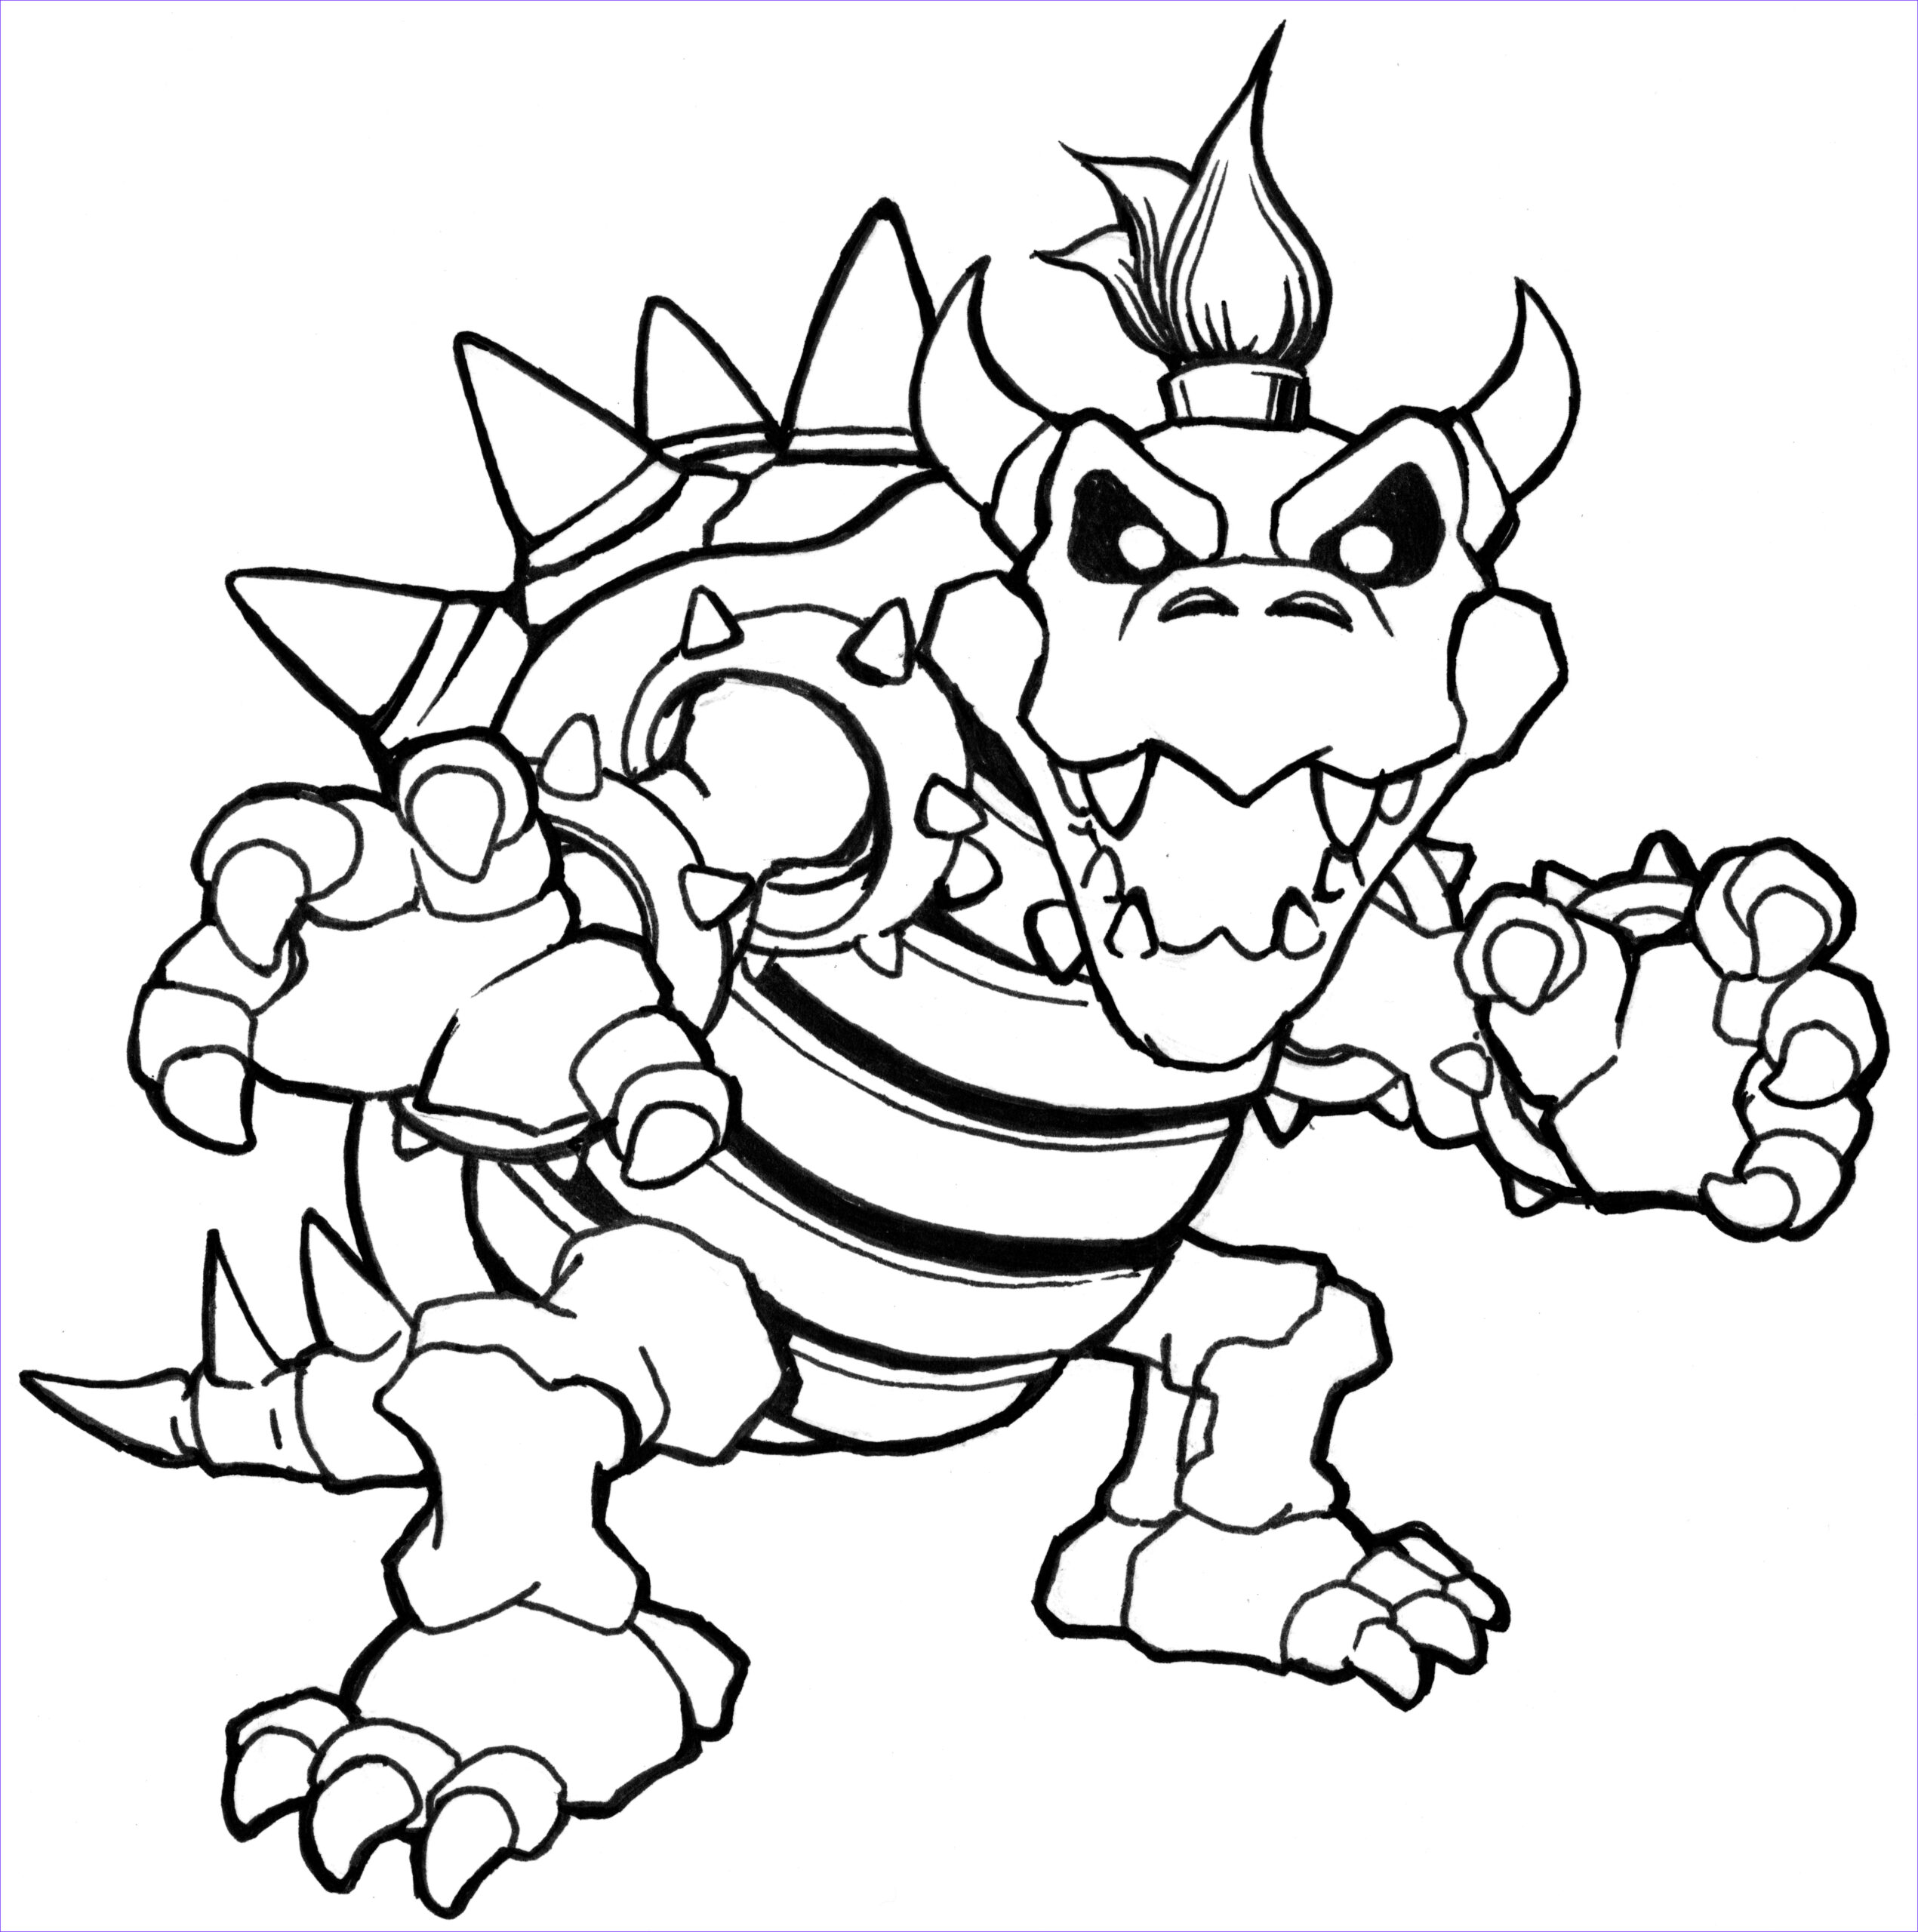 Coloring Pages Mario Awesome Photos Bowser Coloring Bowser Coloring Pages Dry Bowser Mario